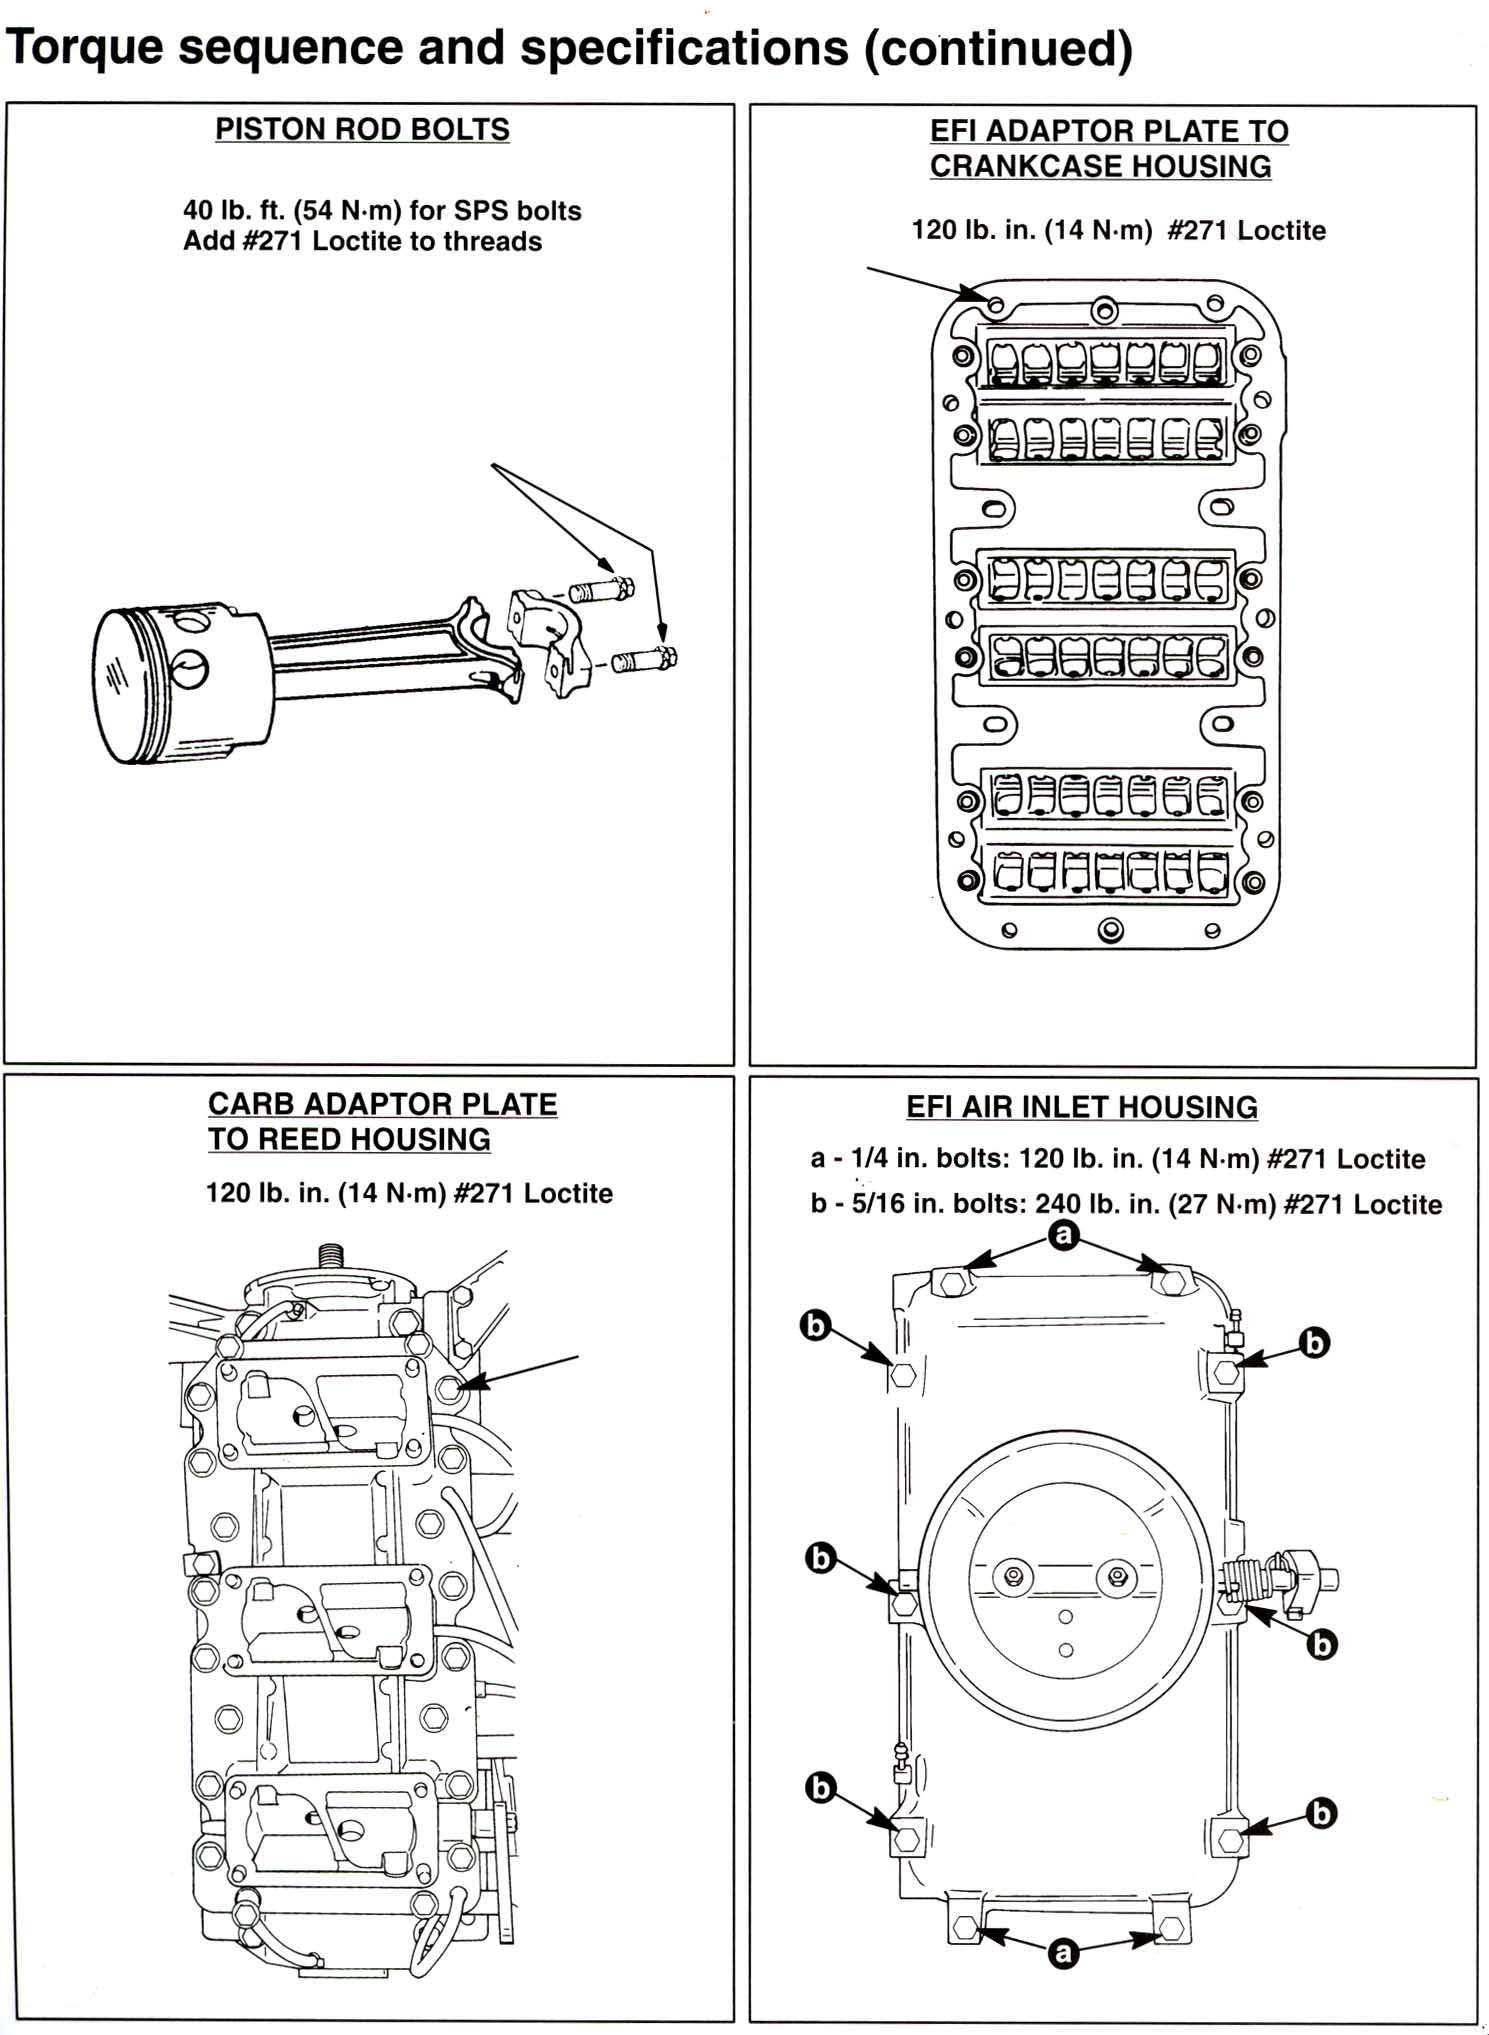 e893244 mercury outboard motor wiring diagram 4 5 hp | wiring resources  wiring resources